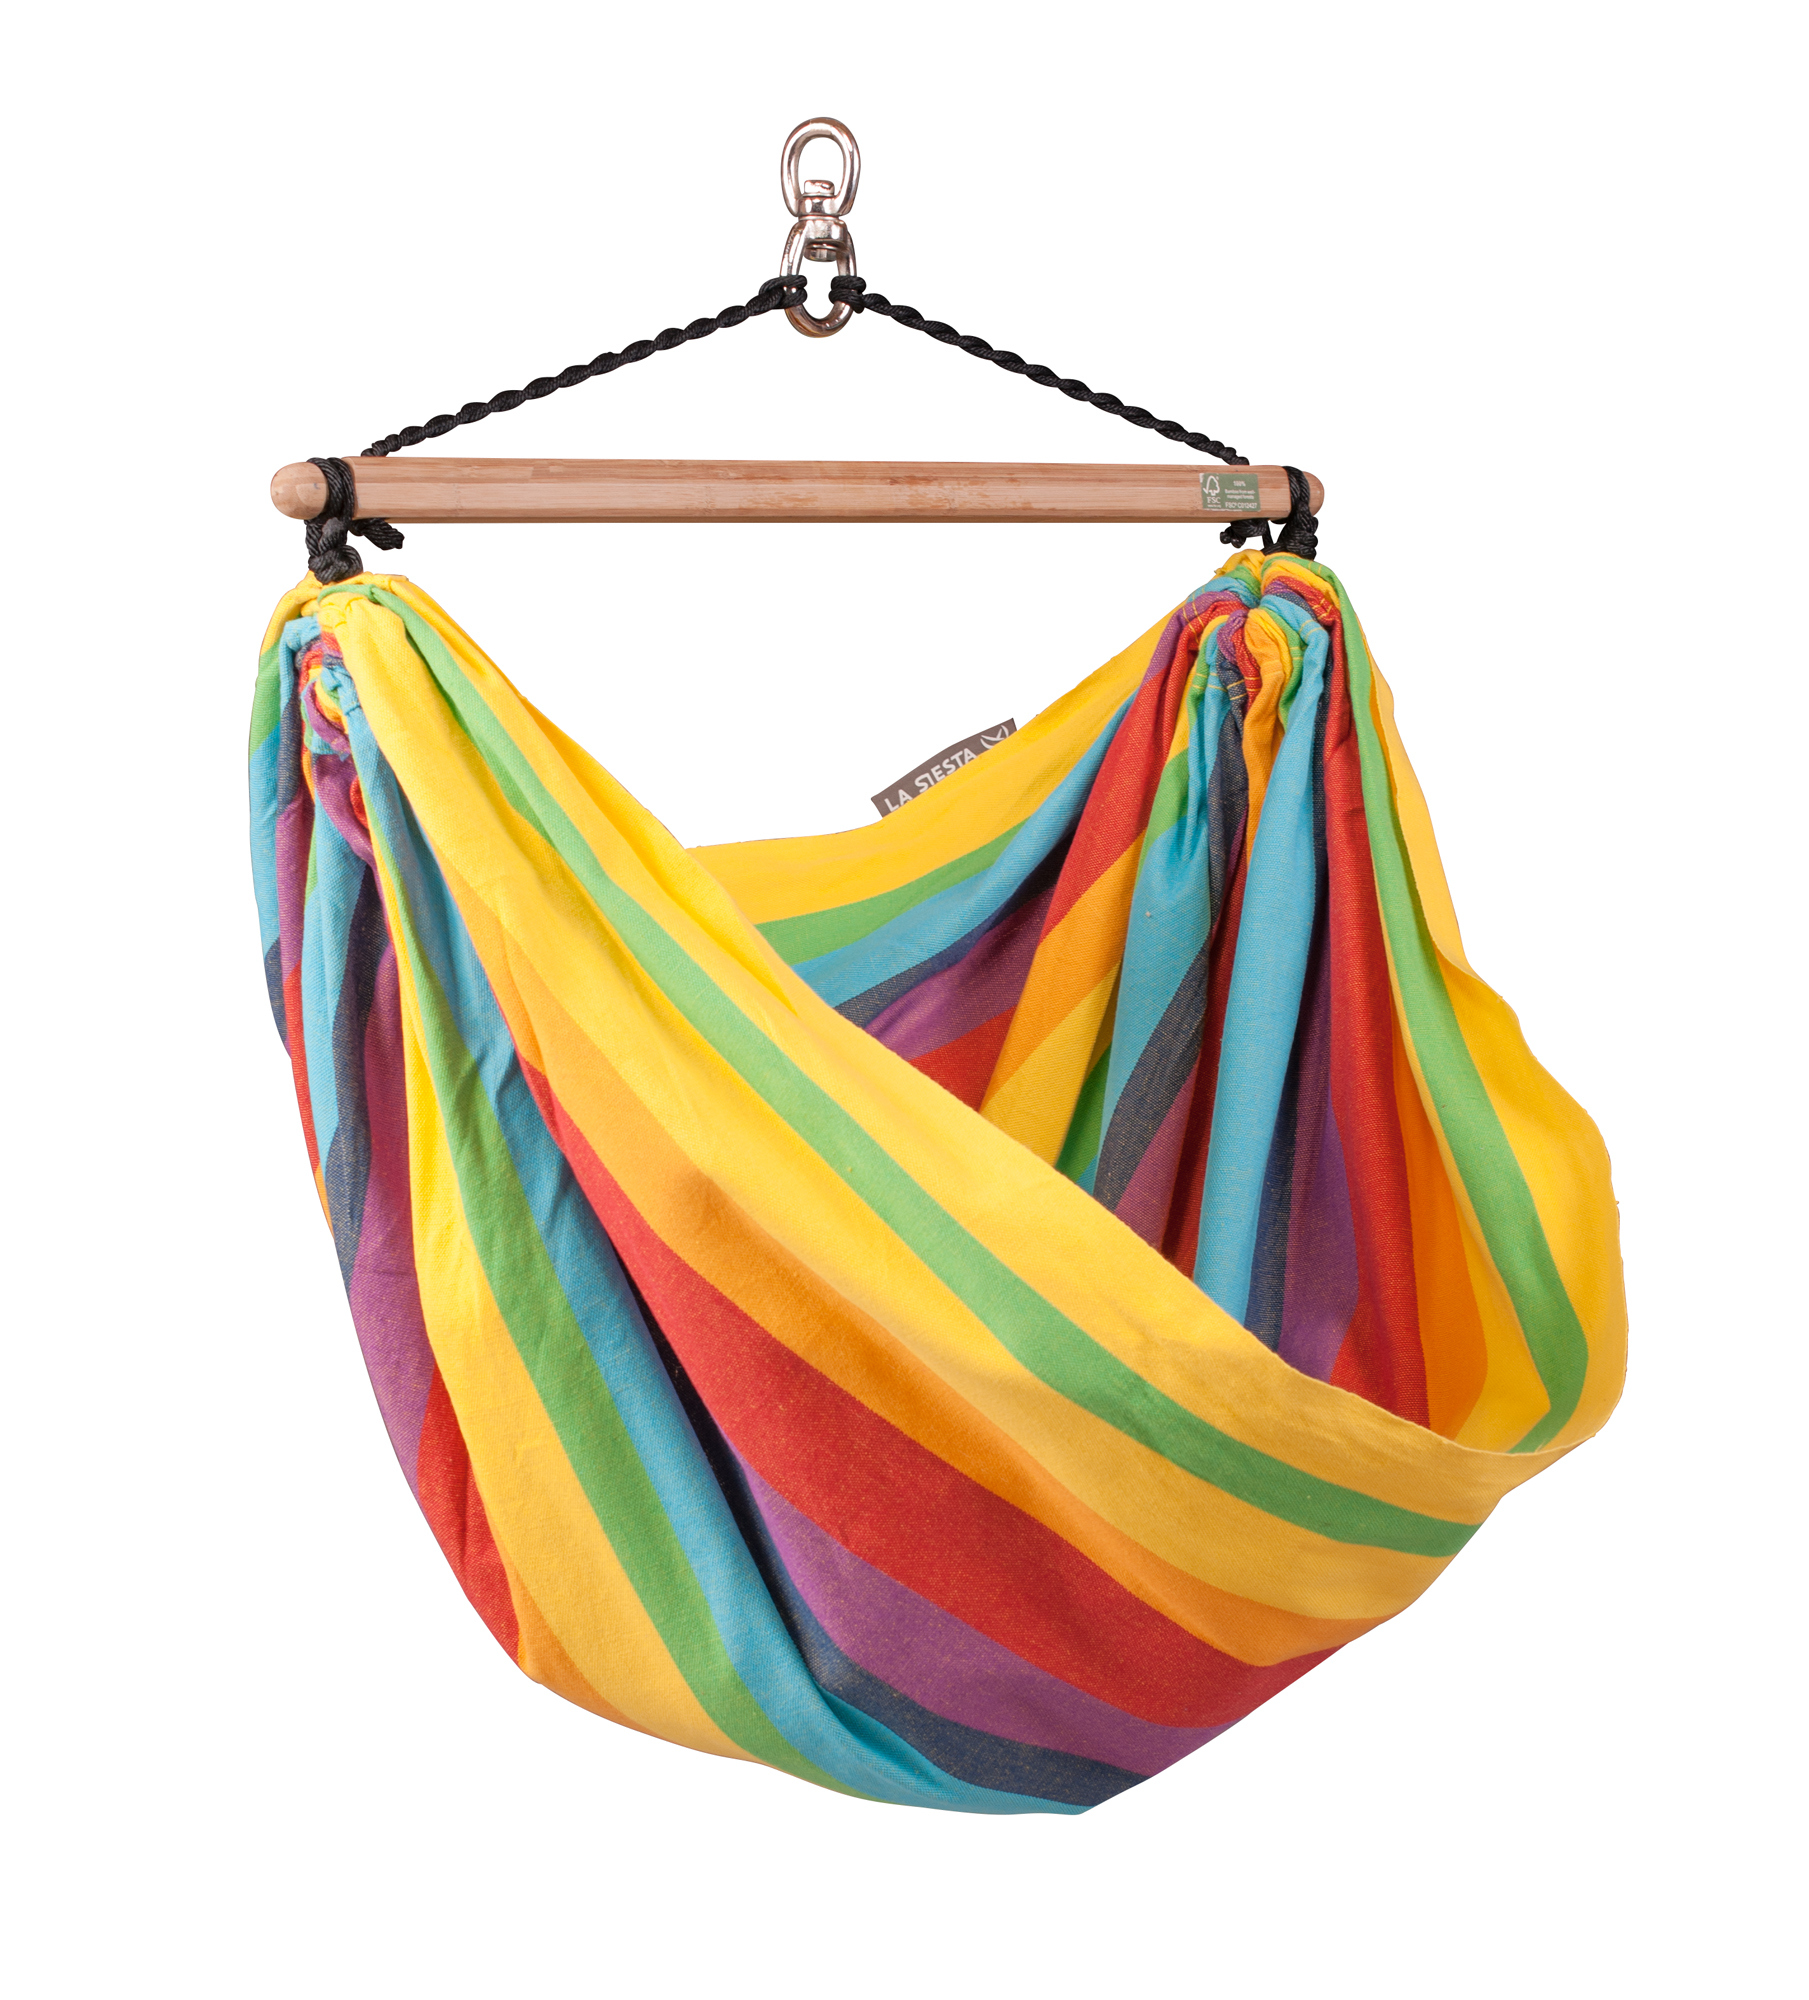 Medium image of iri rainbow hammock chair